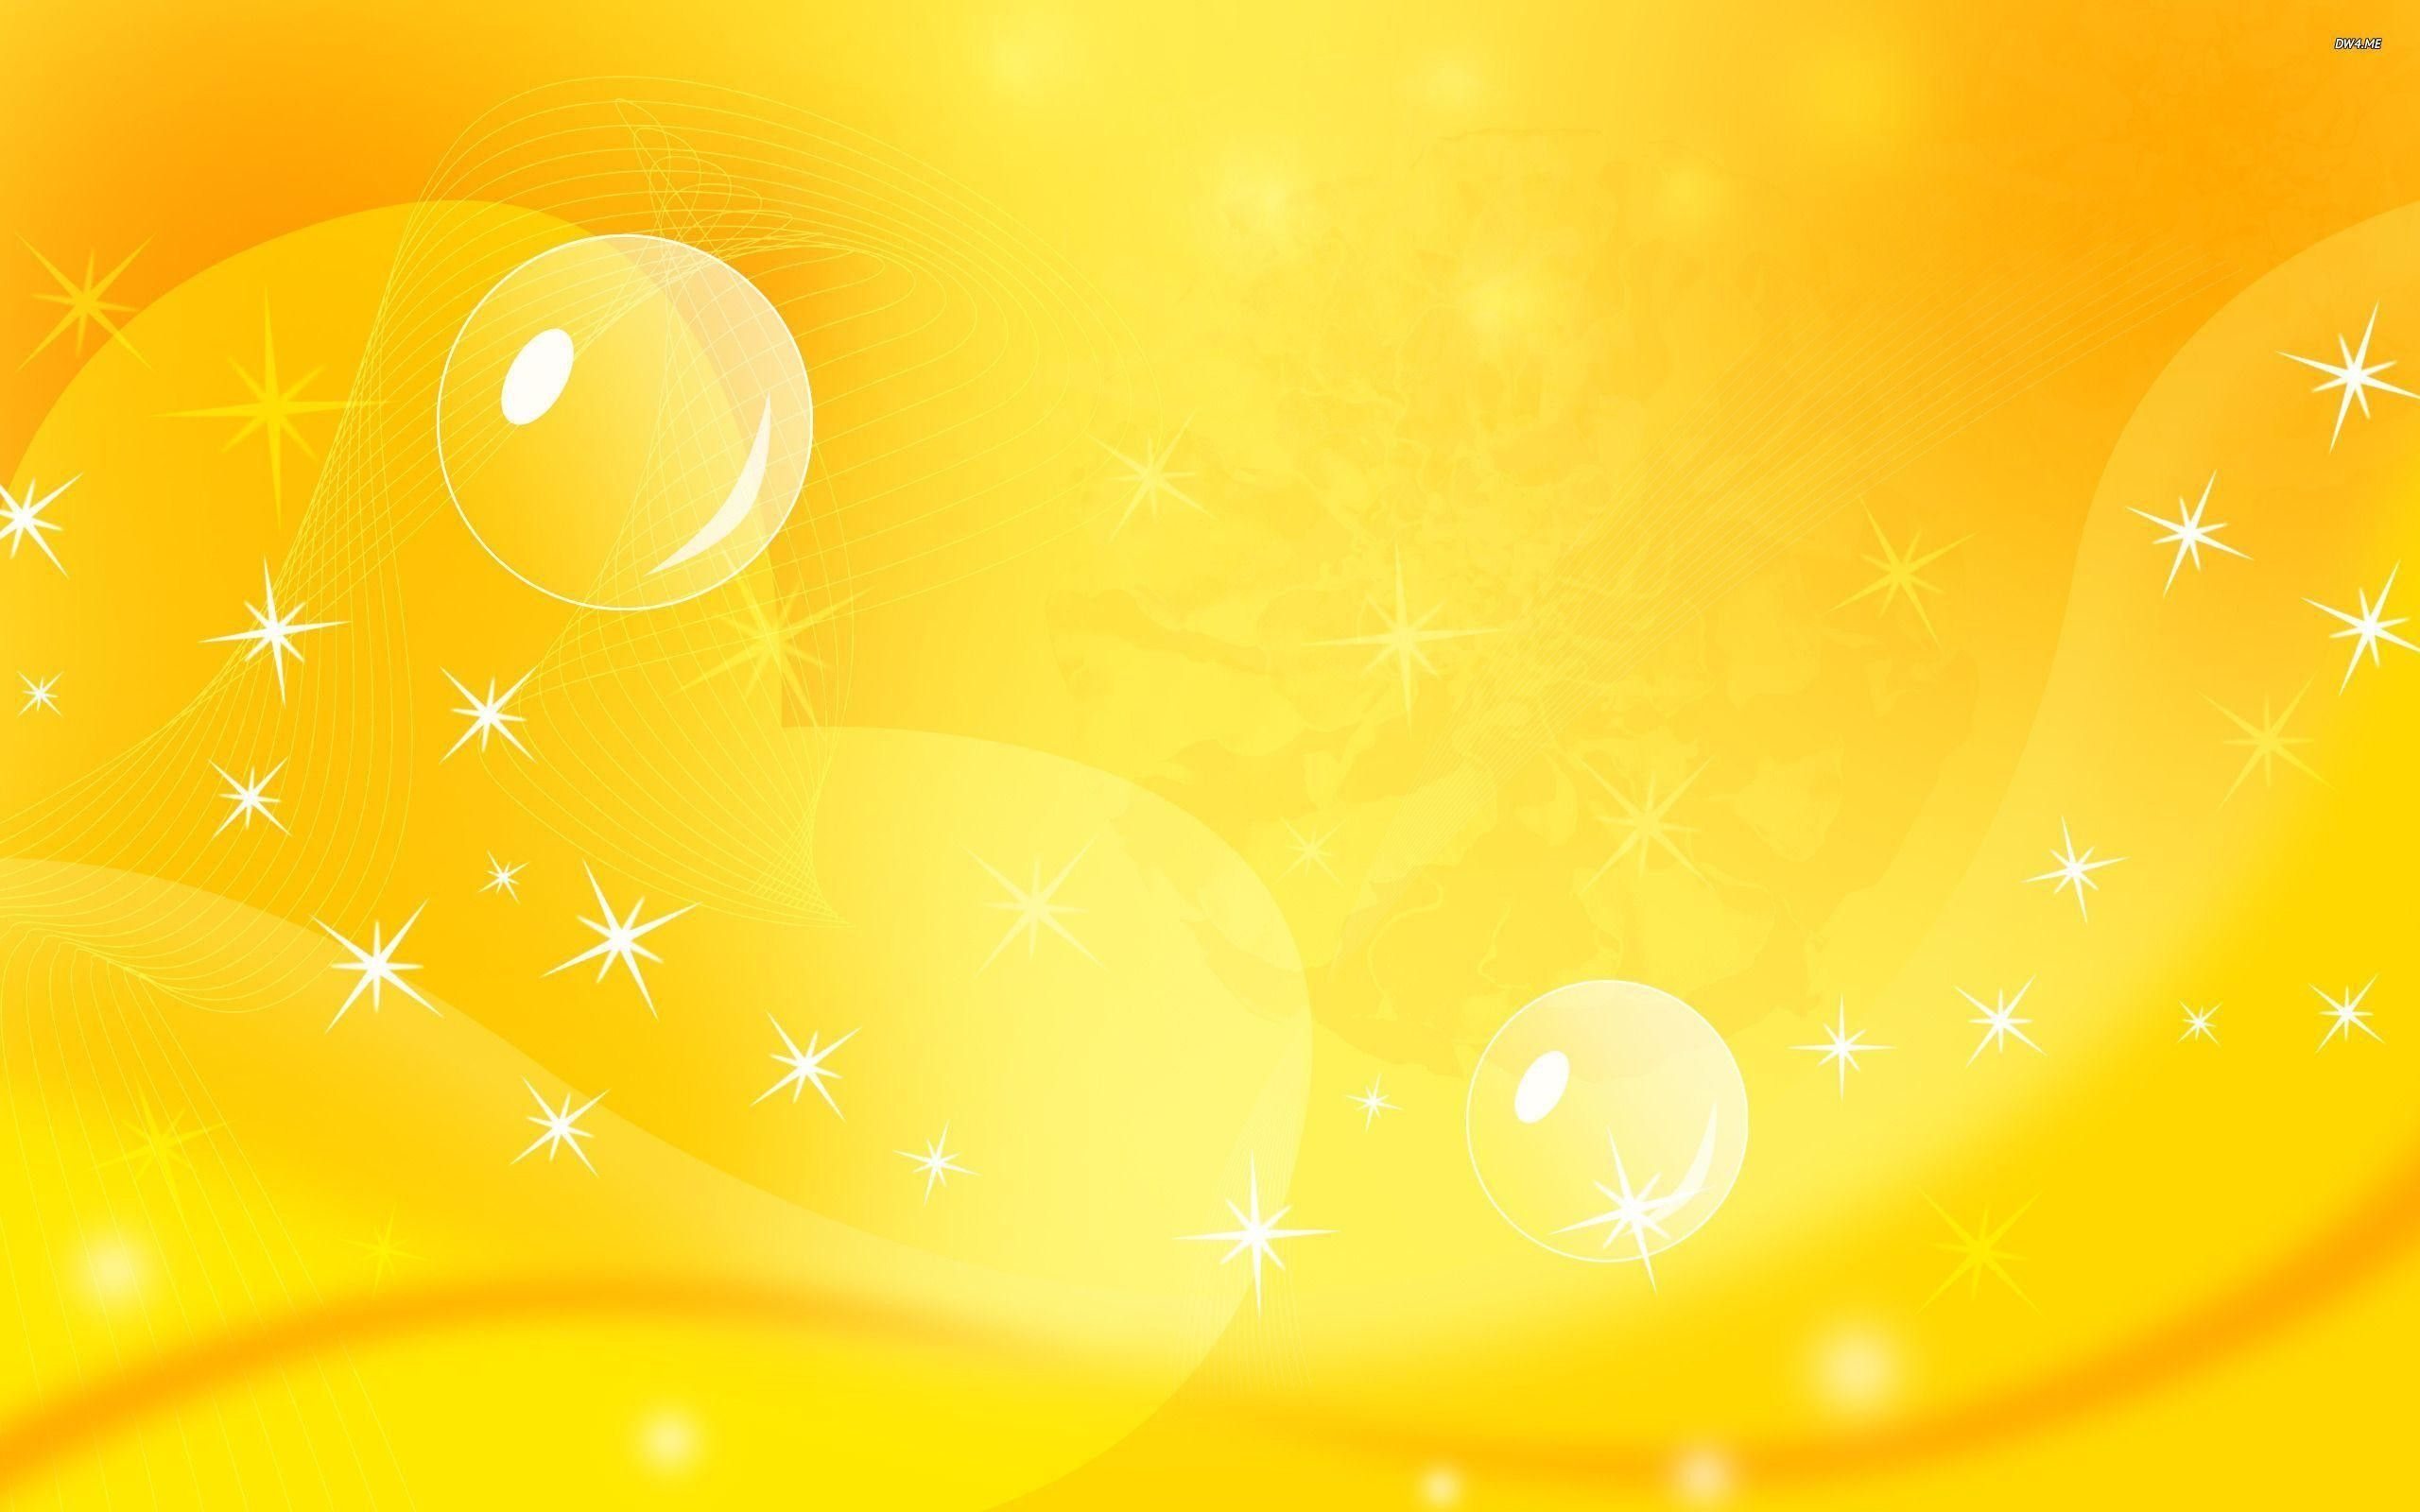 Res 2560x1600 Yellow Colour Full Hd Emage Wallpaper Abstract Wallpaper Yellow Wallpaper Yellow Background